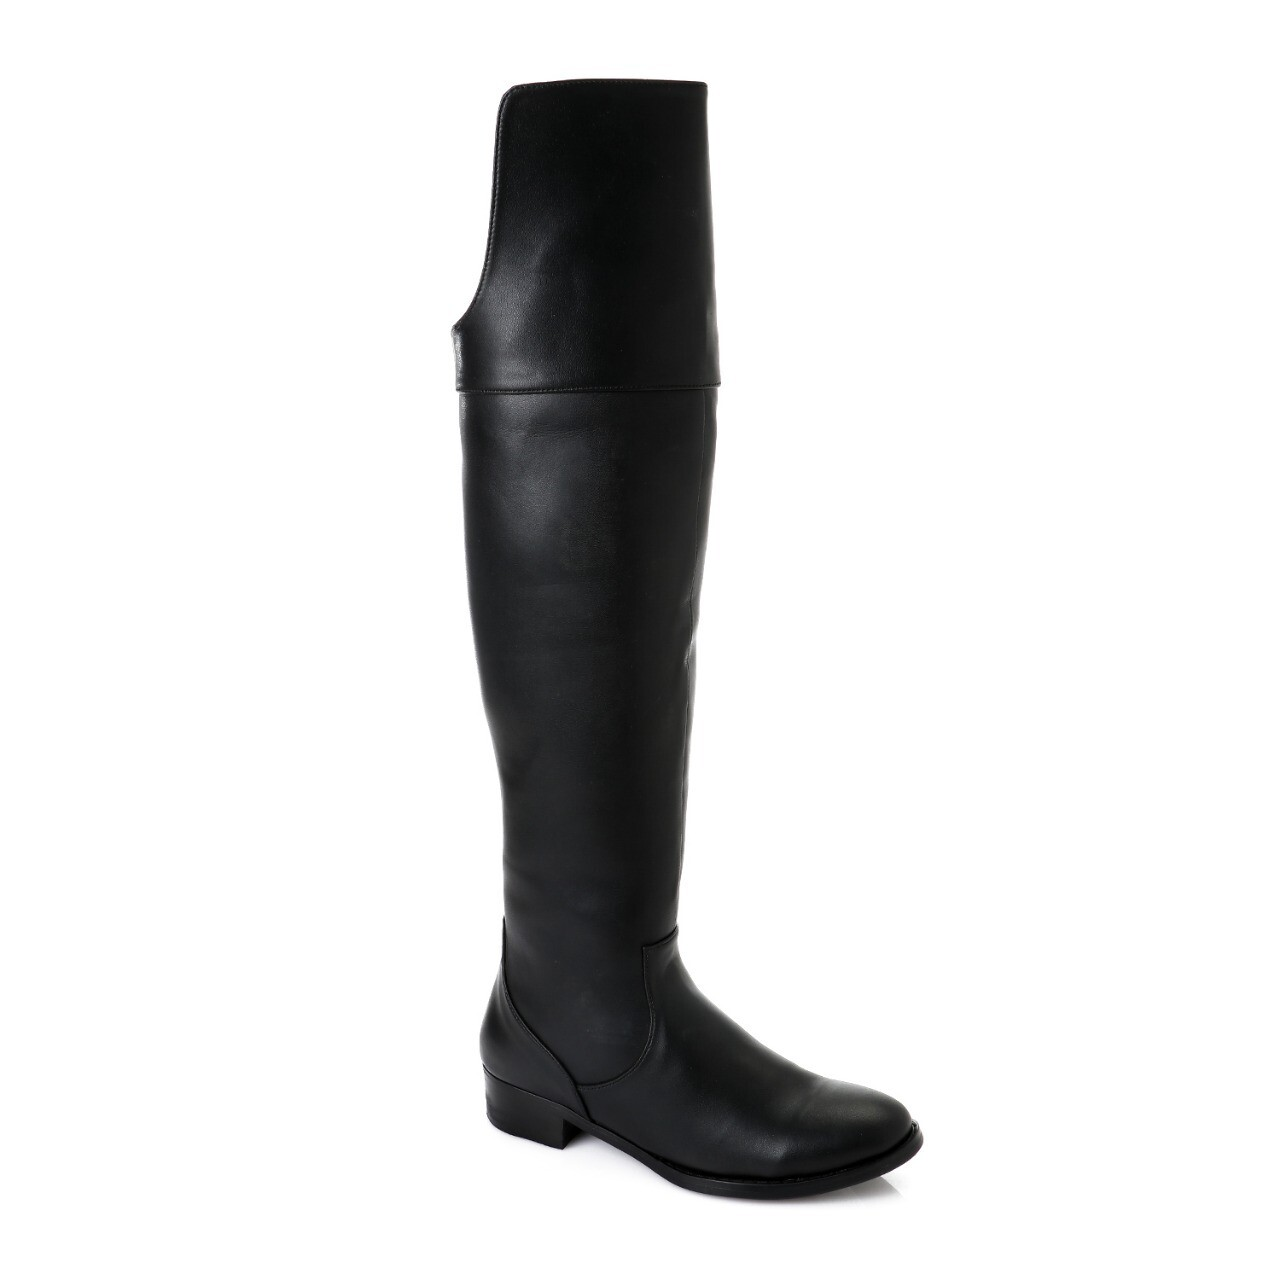 3747 Knee High Boot - Black